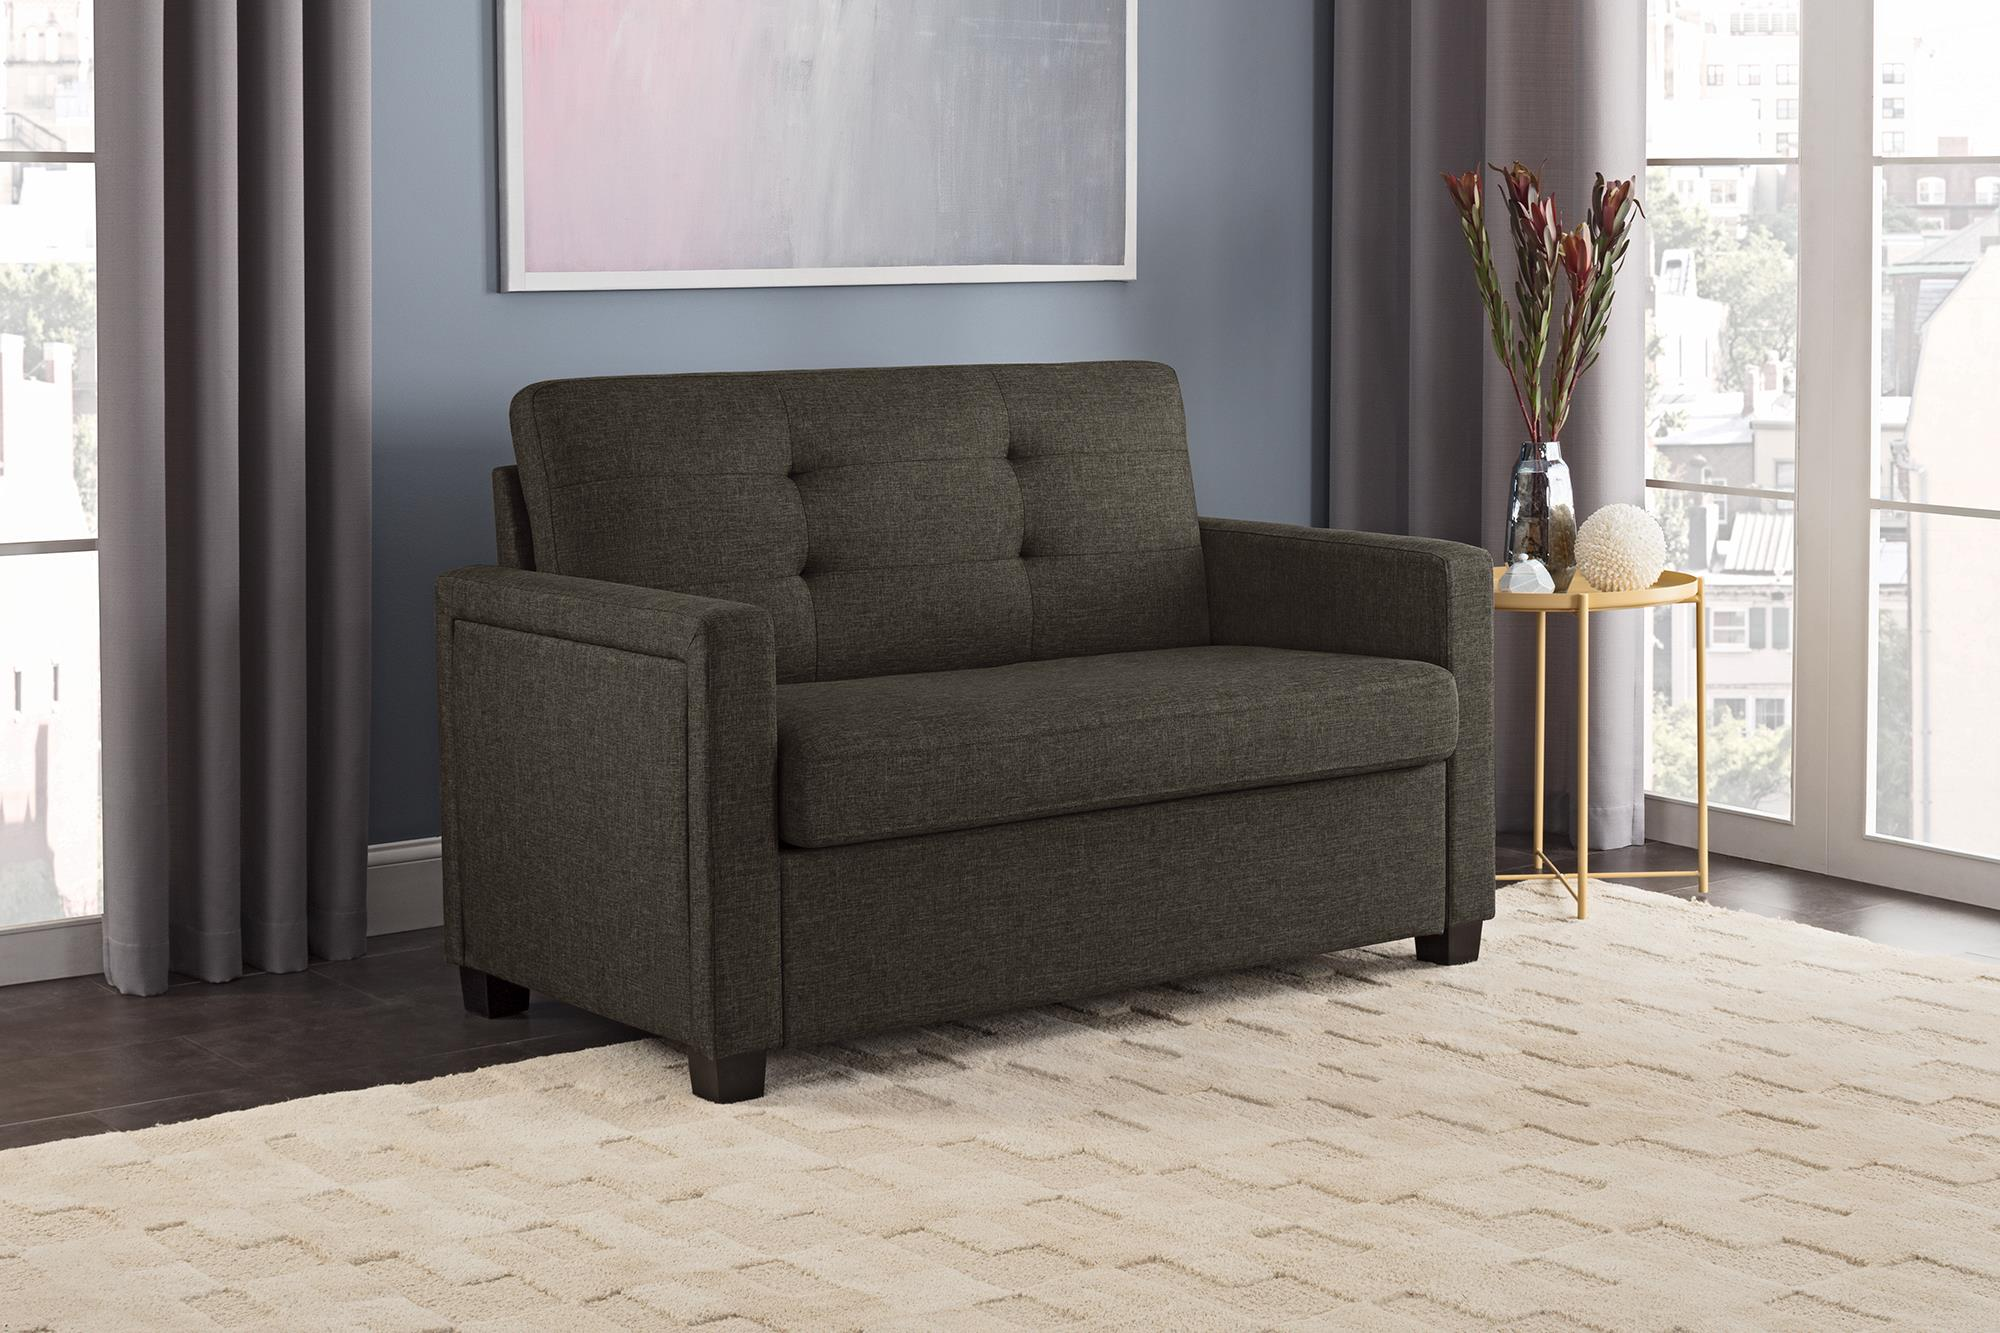 Better Homes And Gardens Porter Sleeper Sofa, Multiple Colors